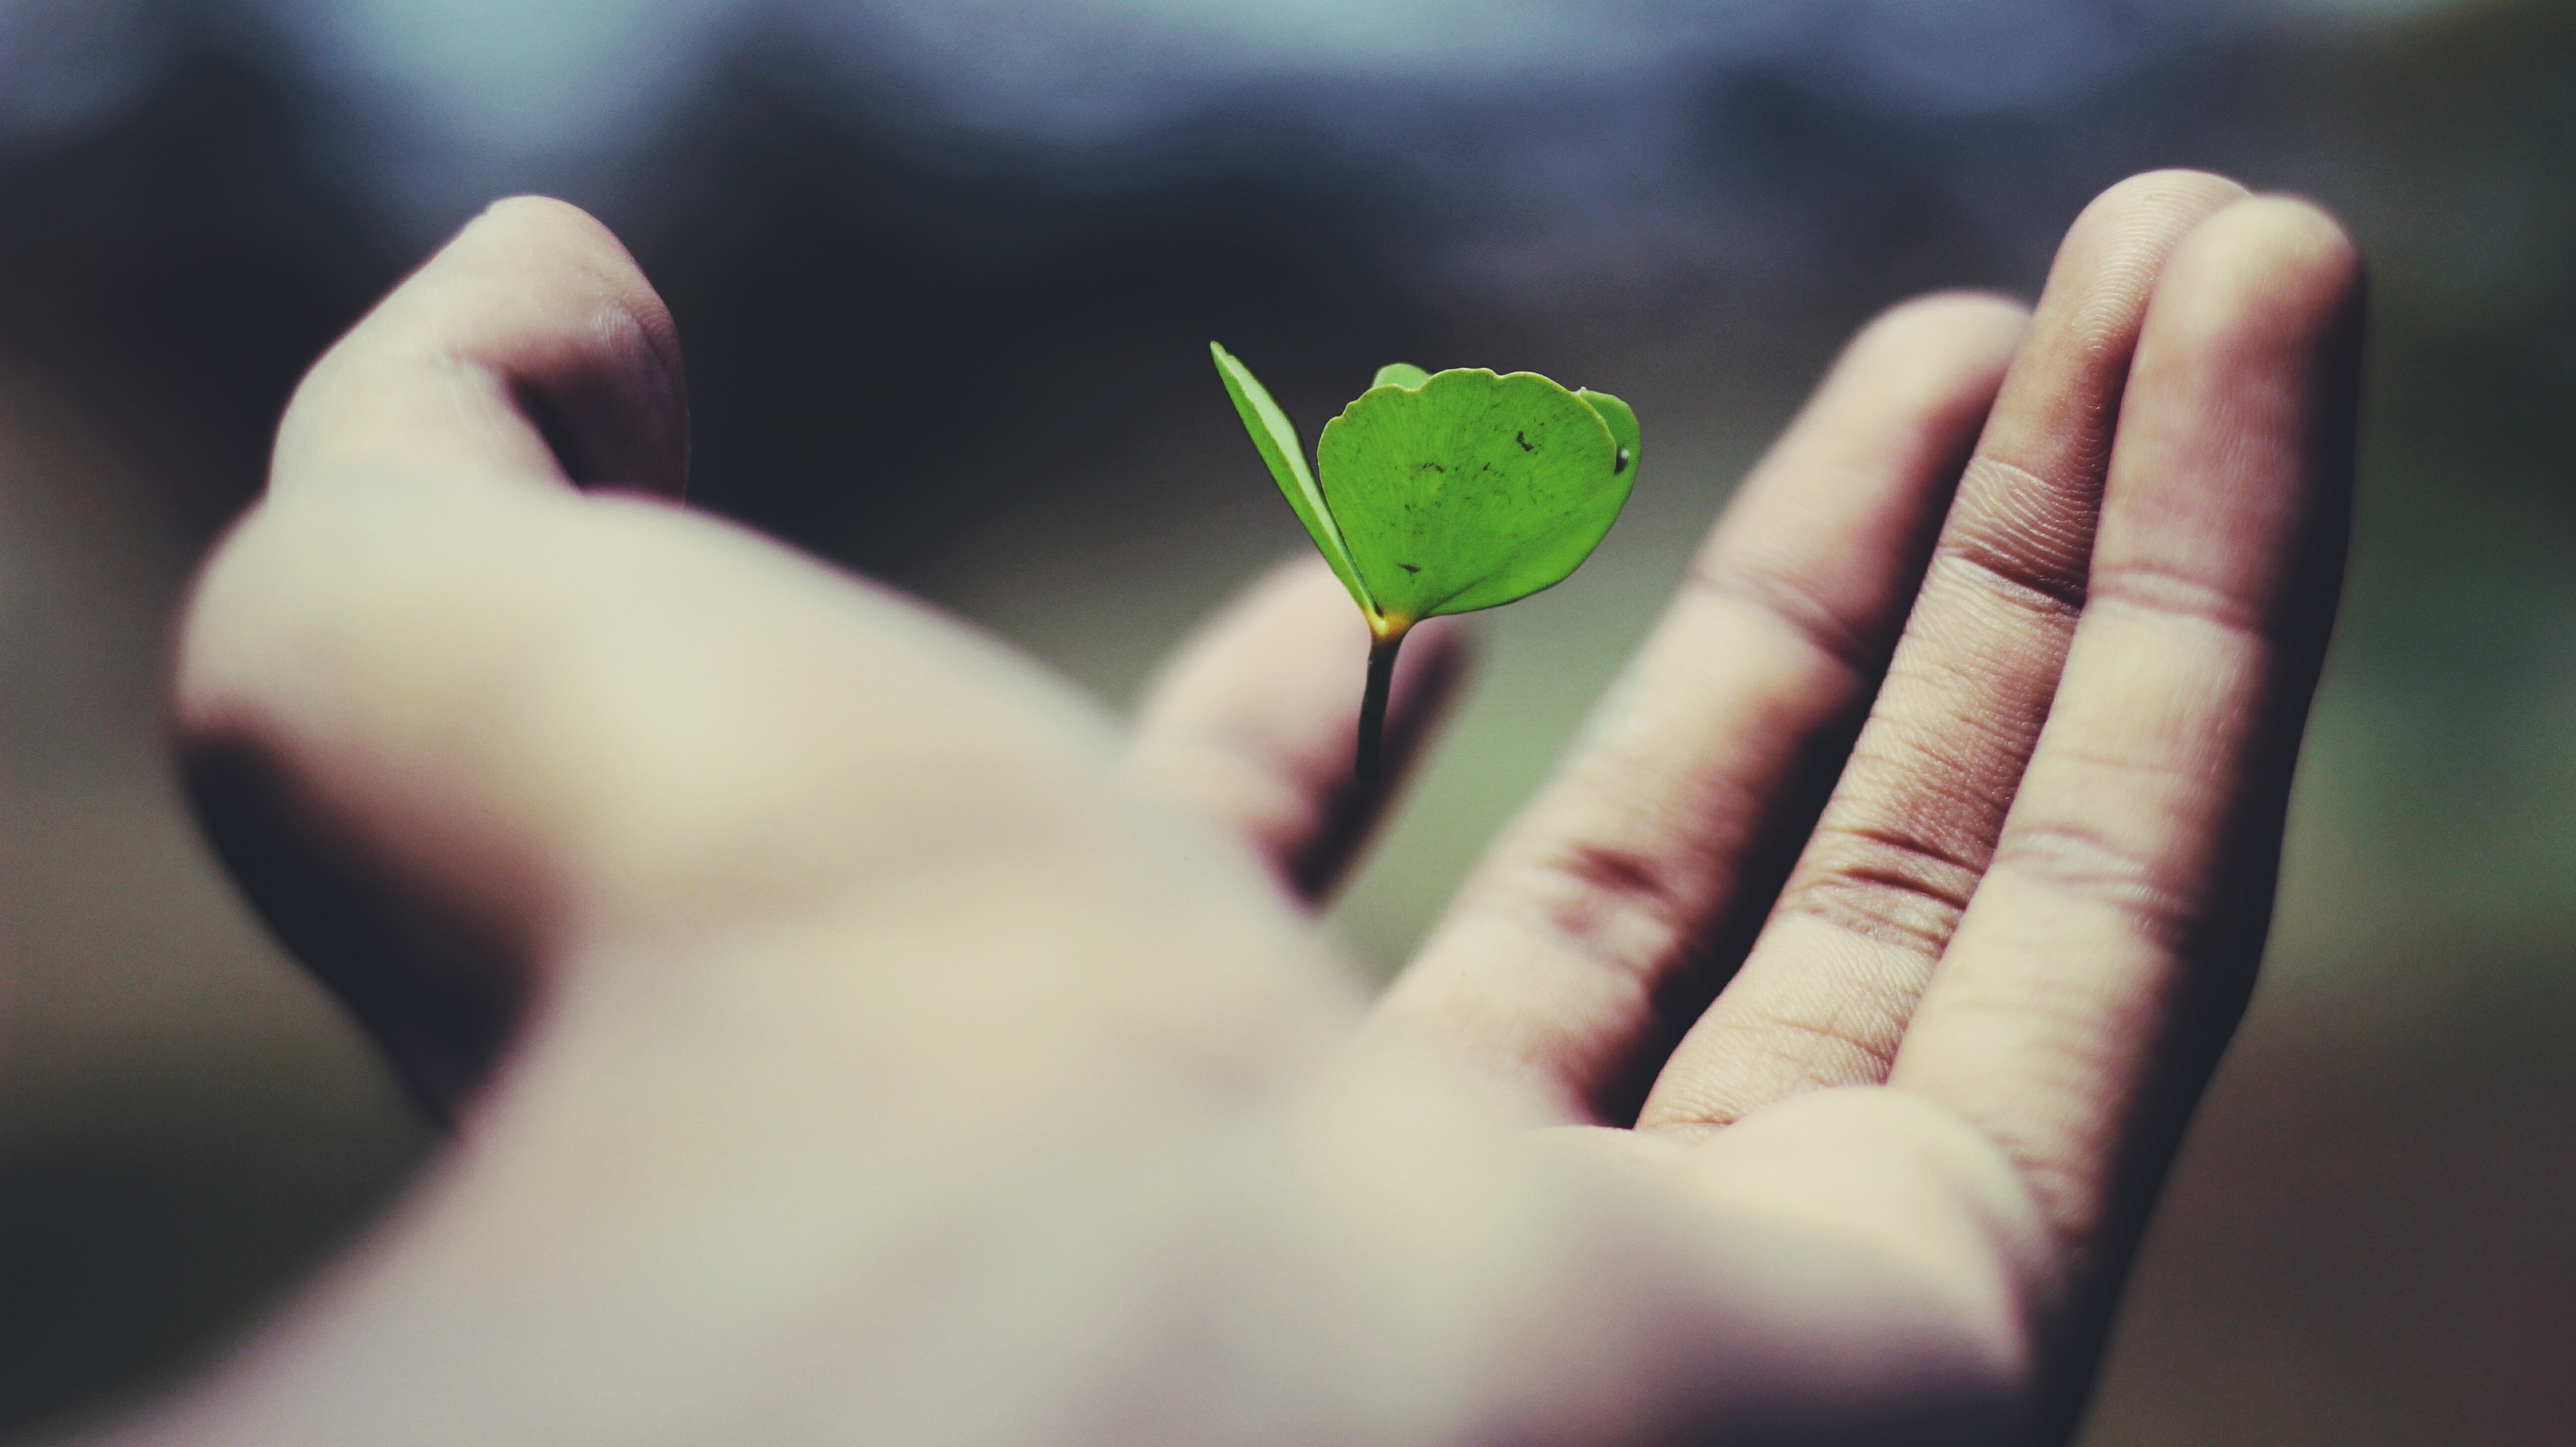 whole person health hand with leaf growing